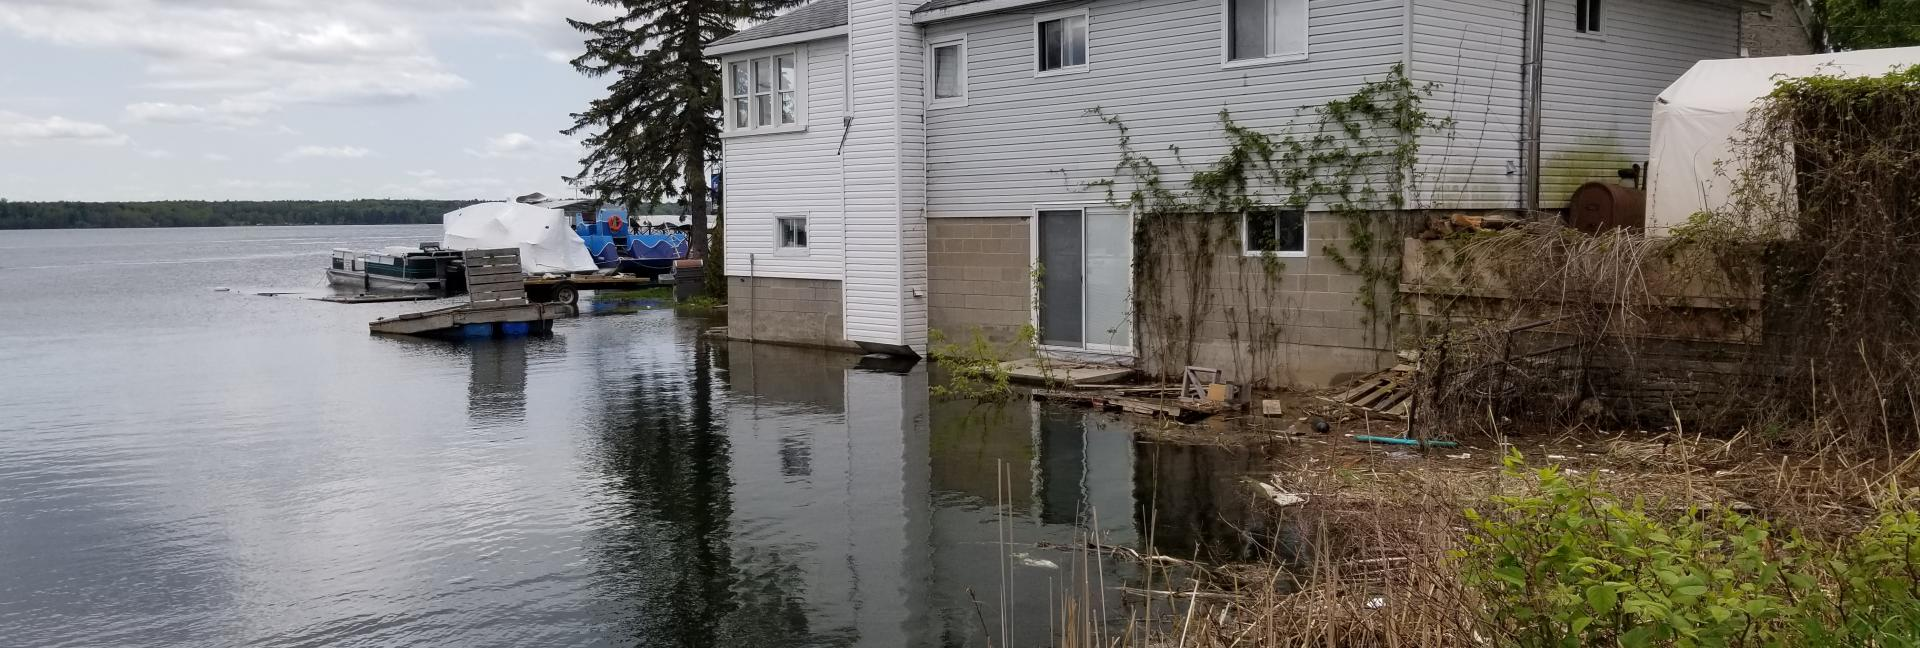 Image of house in Upper St. Lawrence River, Brockville, ON - May 27, 2019